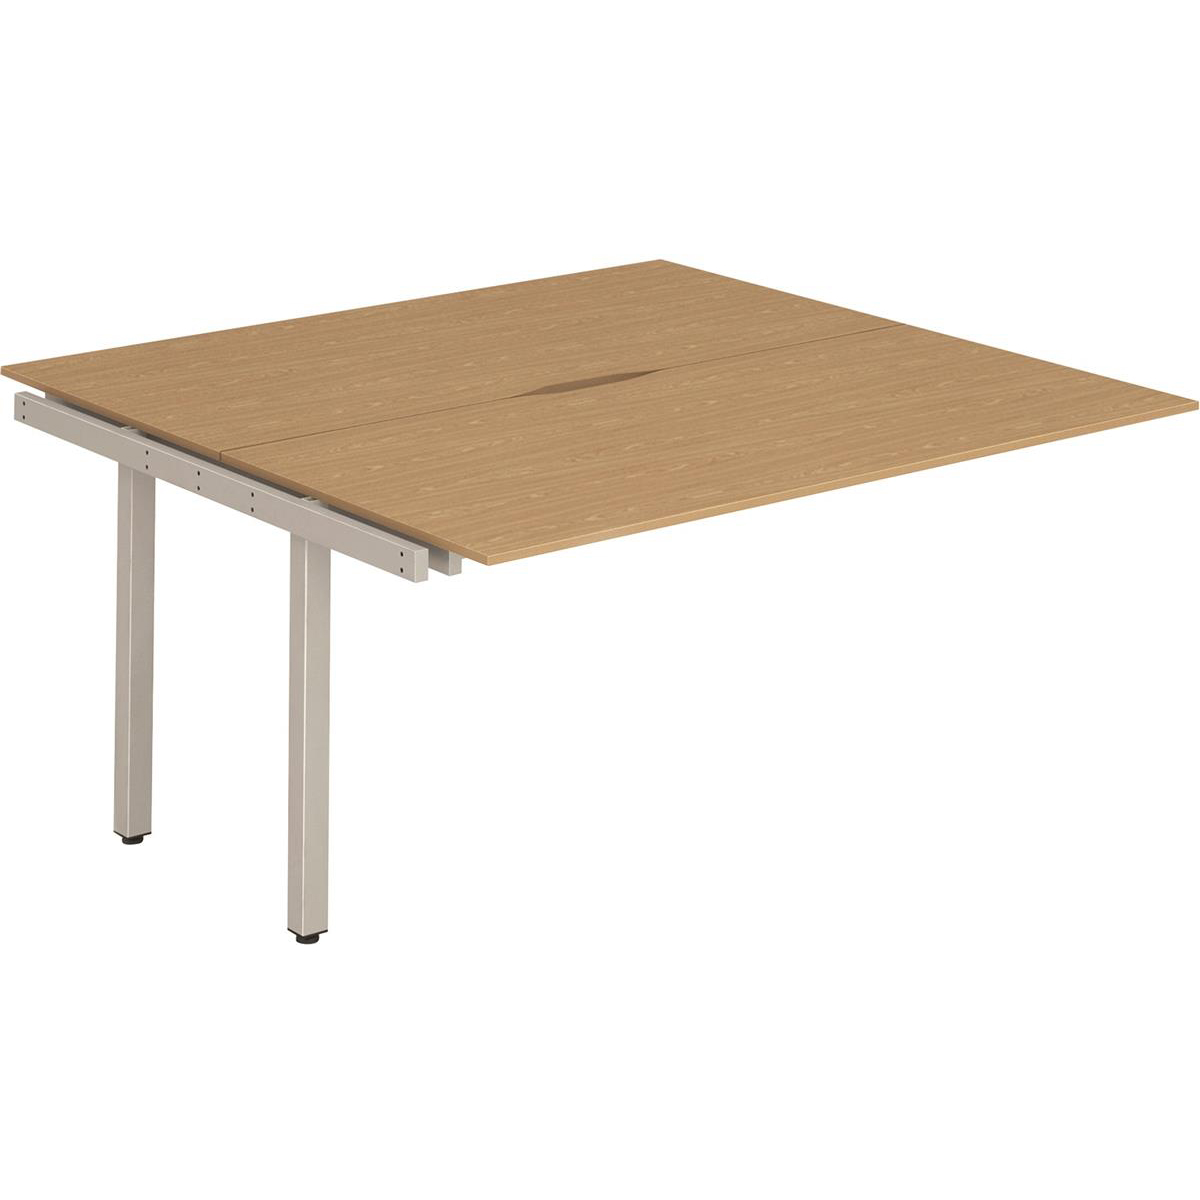 Trexus Bench Desk Double Extension Back to Back Configuration Silver Leg 1400x1600mm Oak Ref BE213